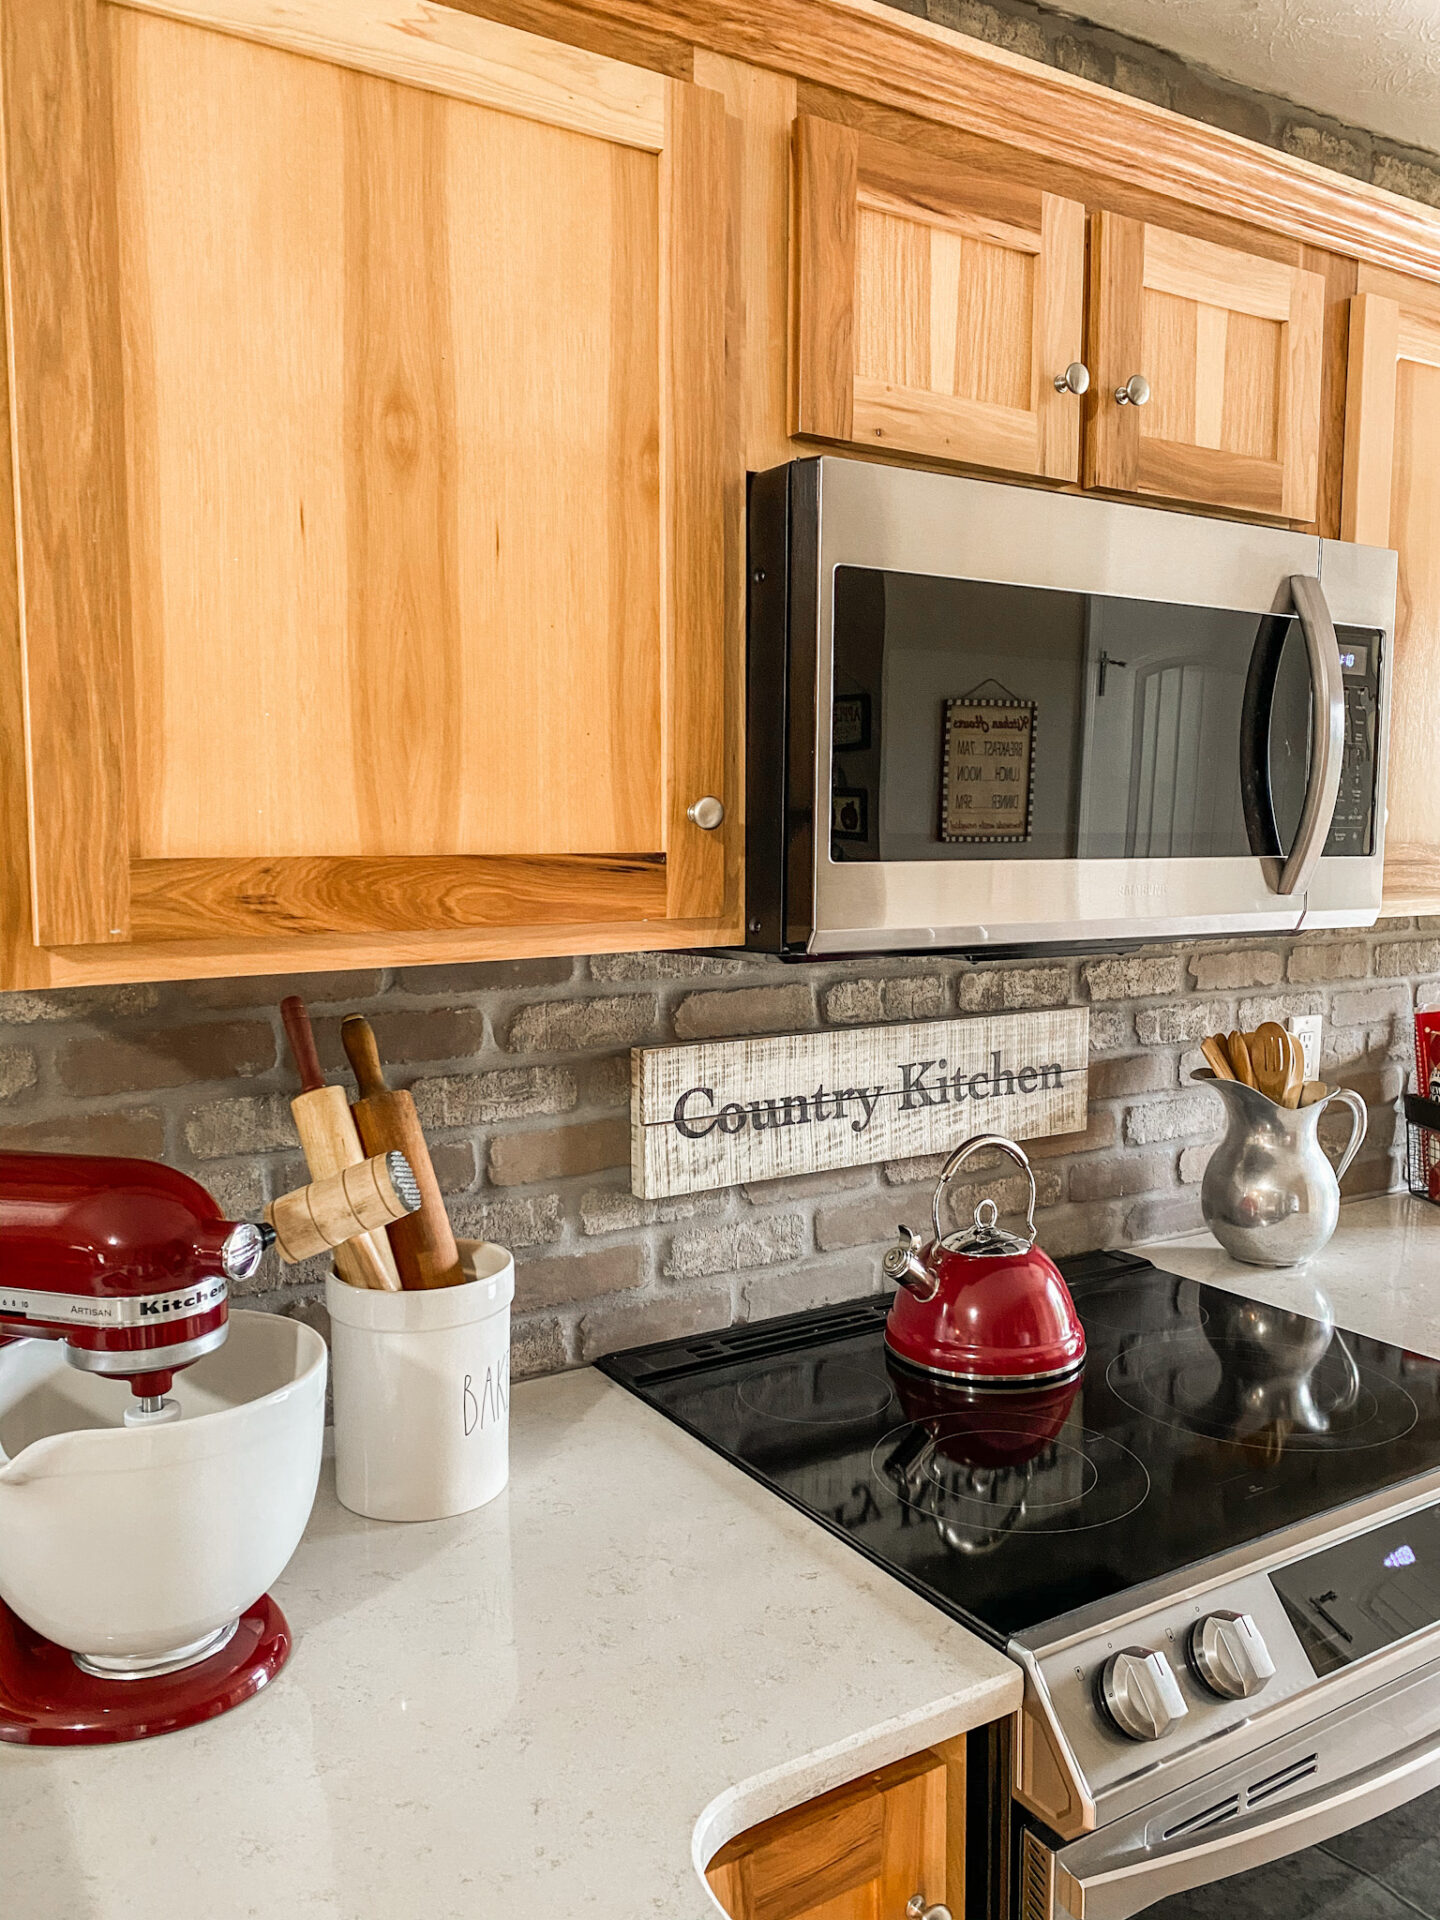 beautiful country kitchen with custom, hand painted sign.